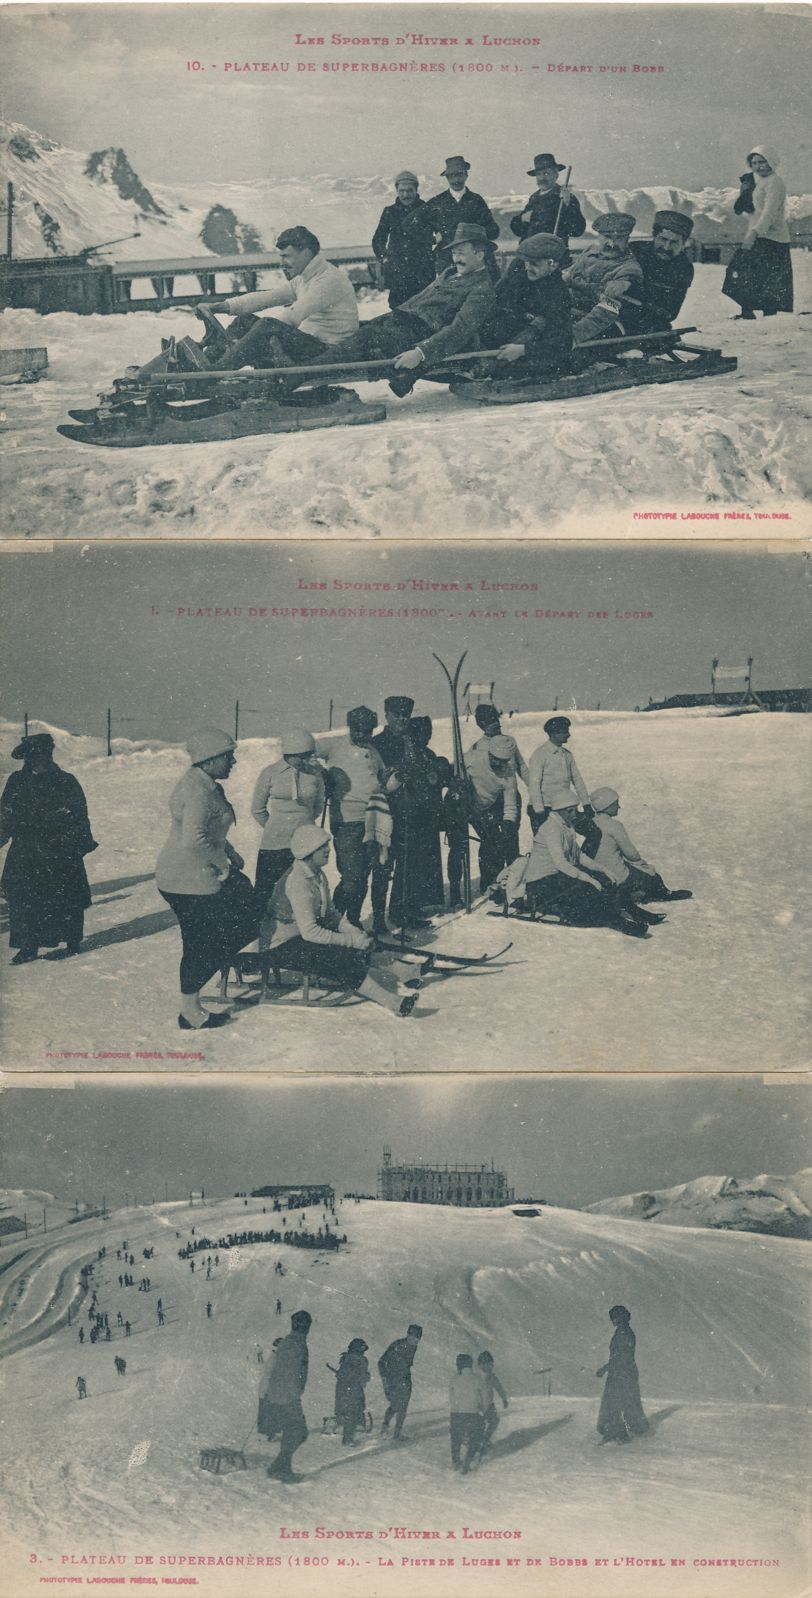 (3 cards) Winter Sports Toboggan Ski Sled - Plateau Superbagneres near Luchon, France - Divided Back